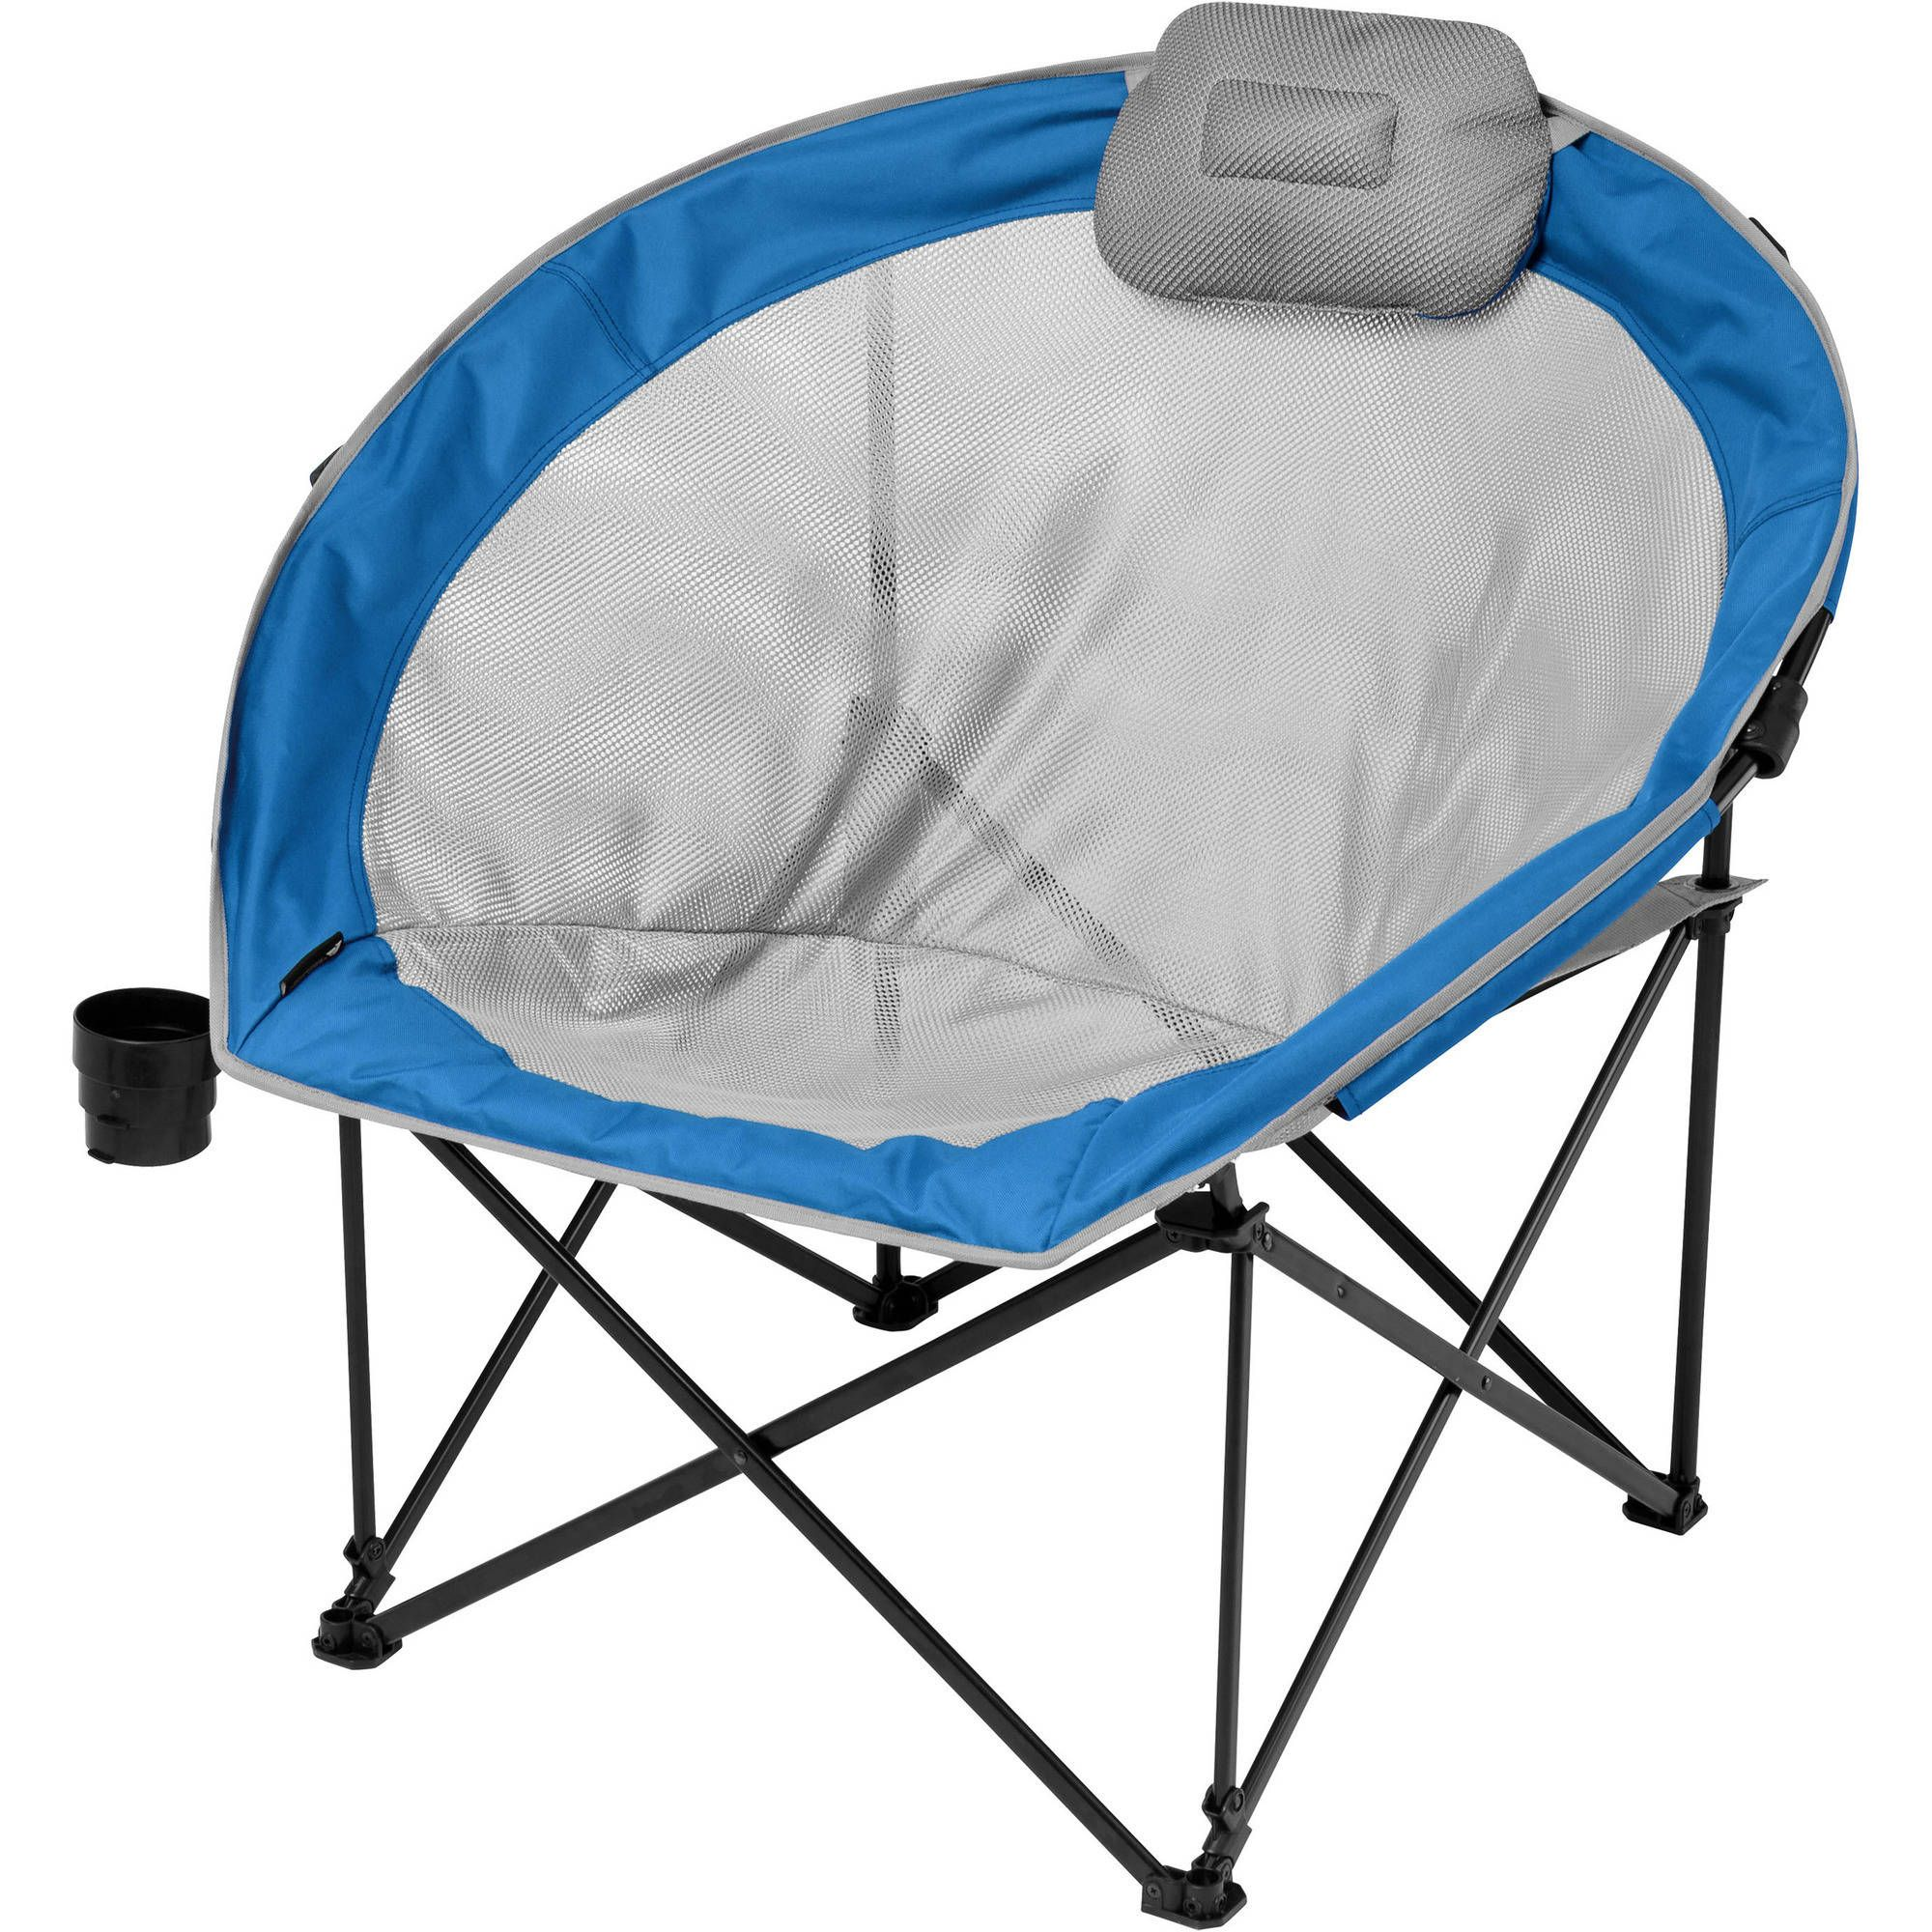 Low Back Lawn Chair Camping World Chairs Simple 94 In Small Interior Ideas With